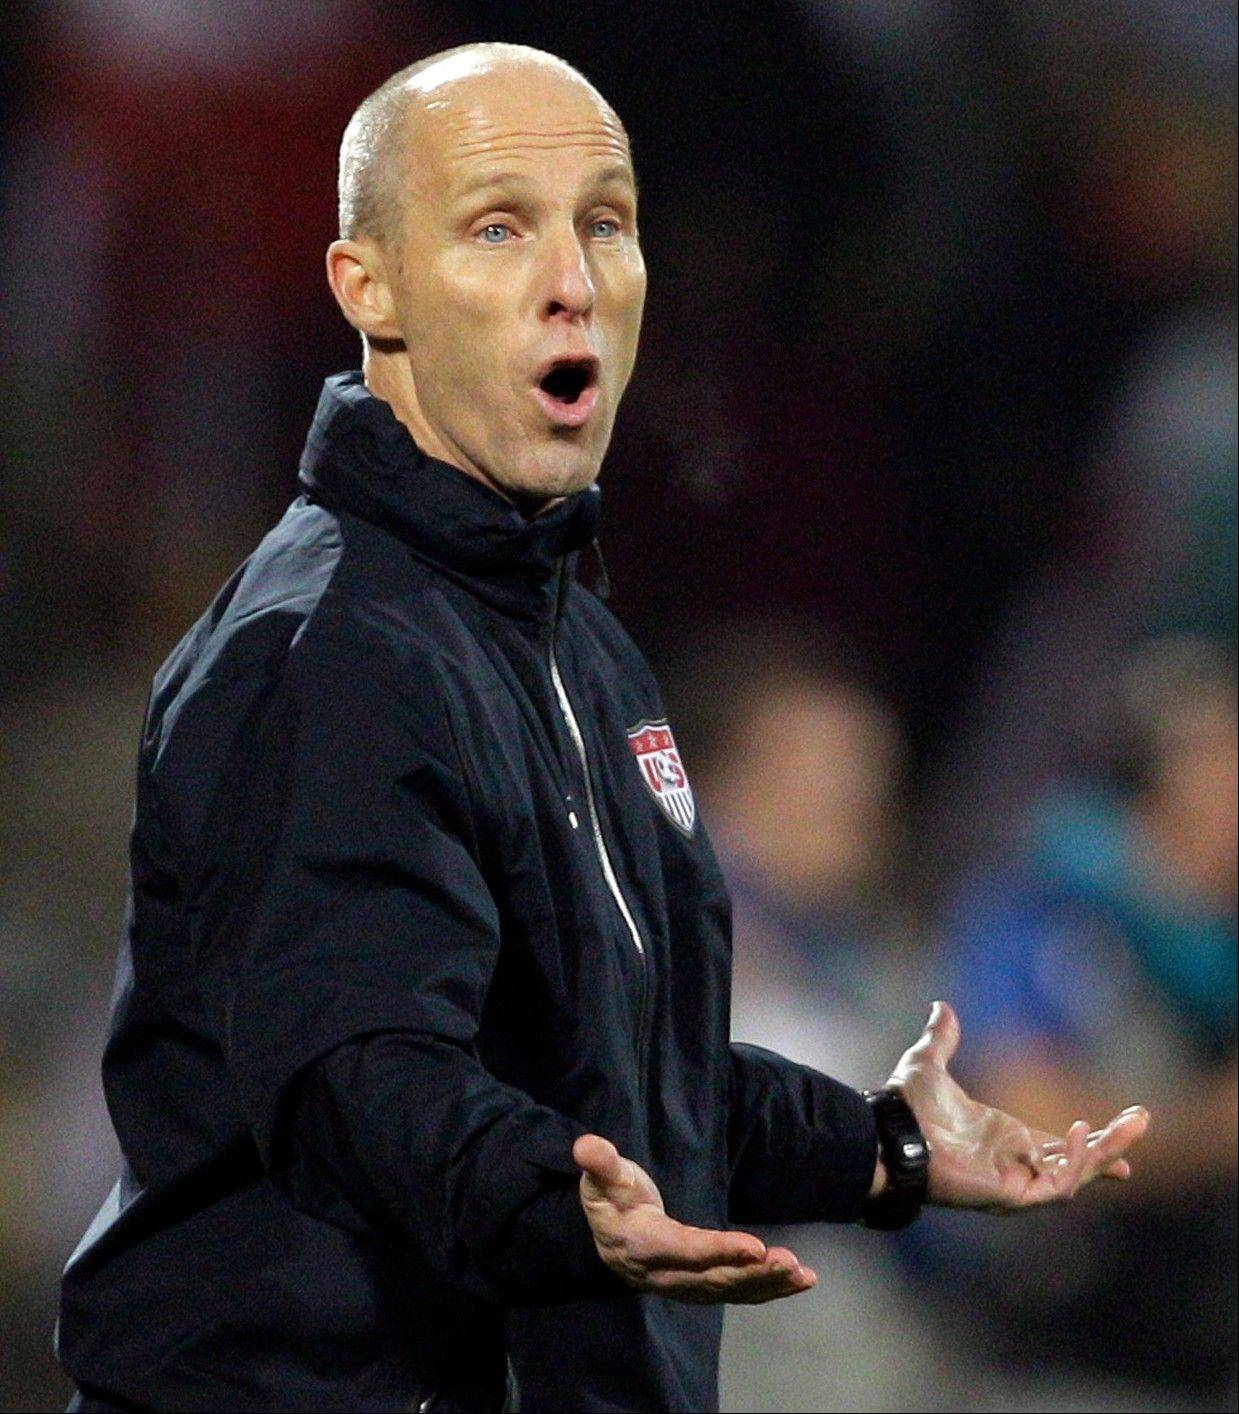 United States head soccer coach Bob Bradley has been fired as head coach of the U.S. men�s national team after five years, U.S. Soccer President Sunil Gulati announced Thursday.